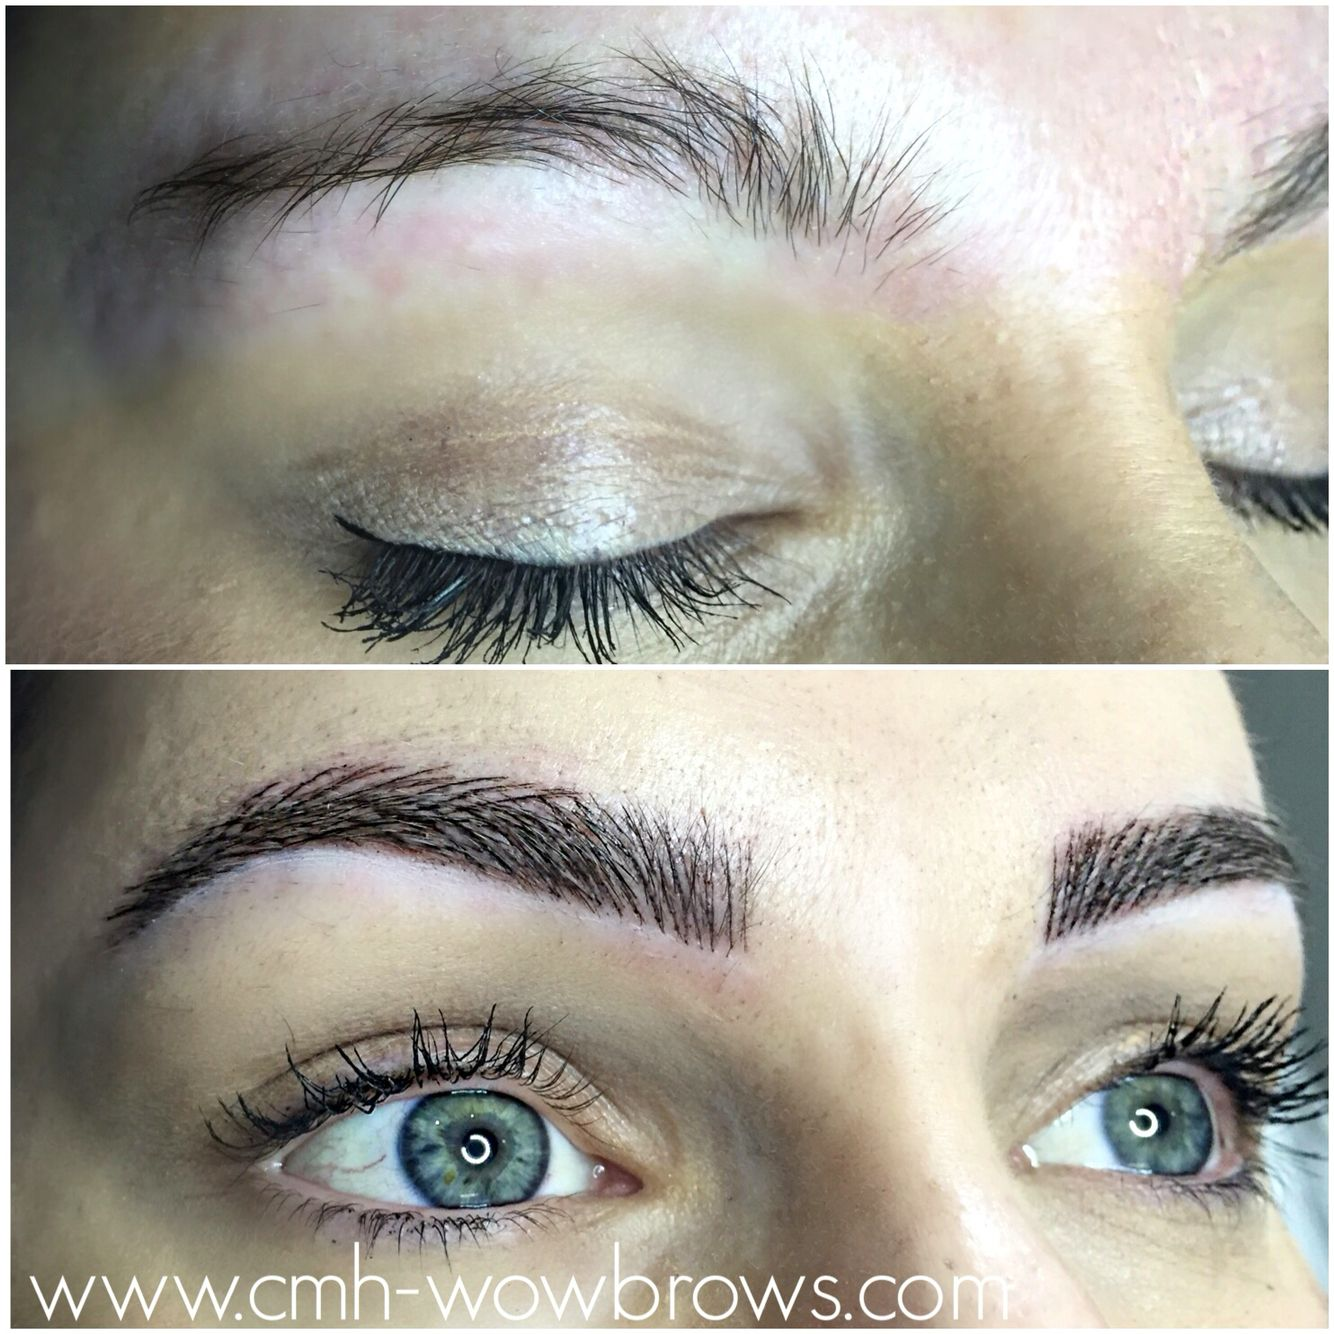 Microblading Microstroke Feathering Feather Touch Eyebrow Tattooing